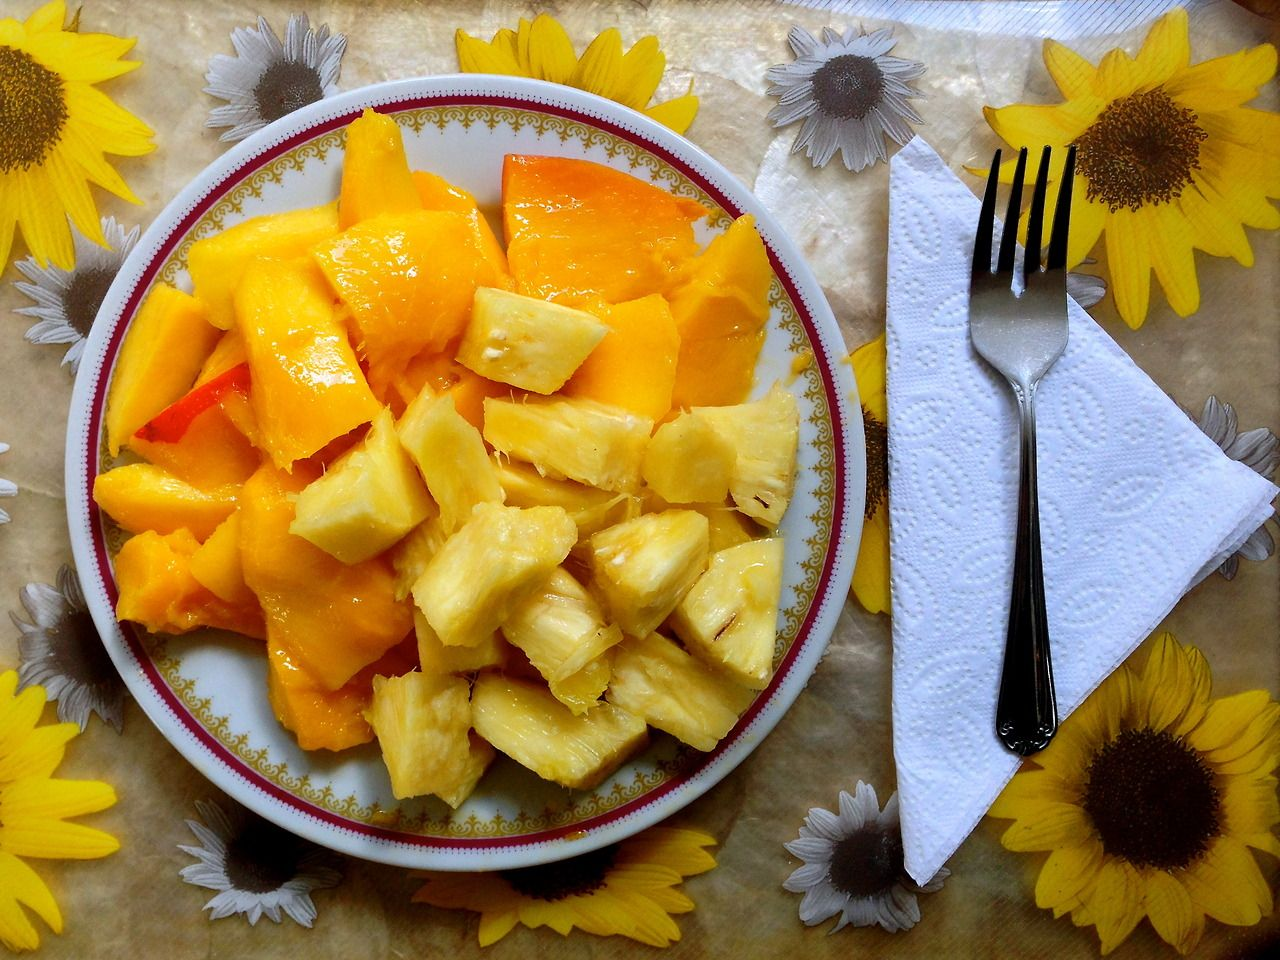 Enjoy bountiful fruit breakfasts, just like the one above.     2 mangoes and pineapple never tasted so decadent.